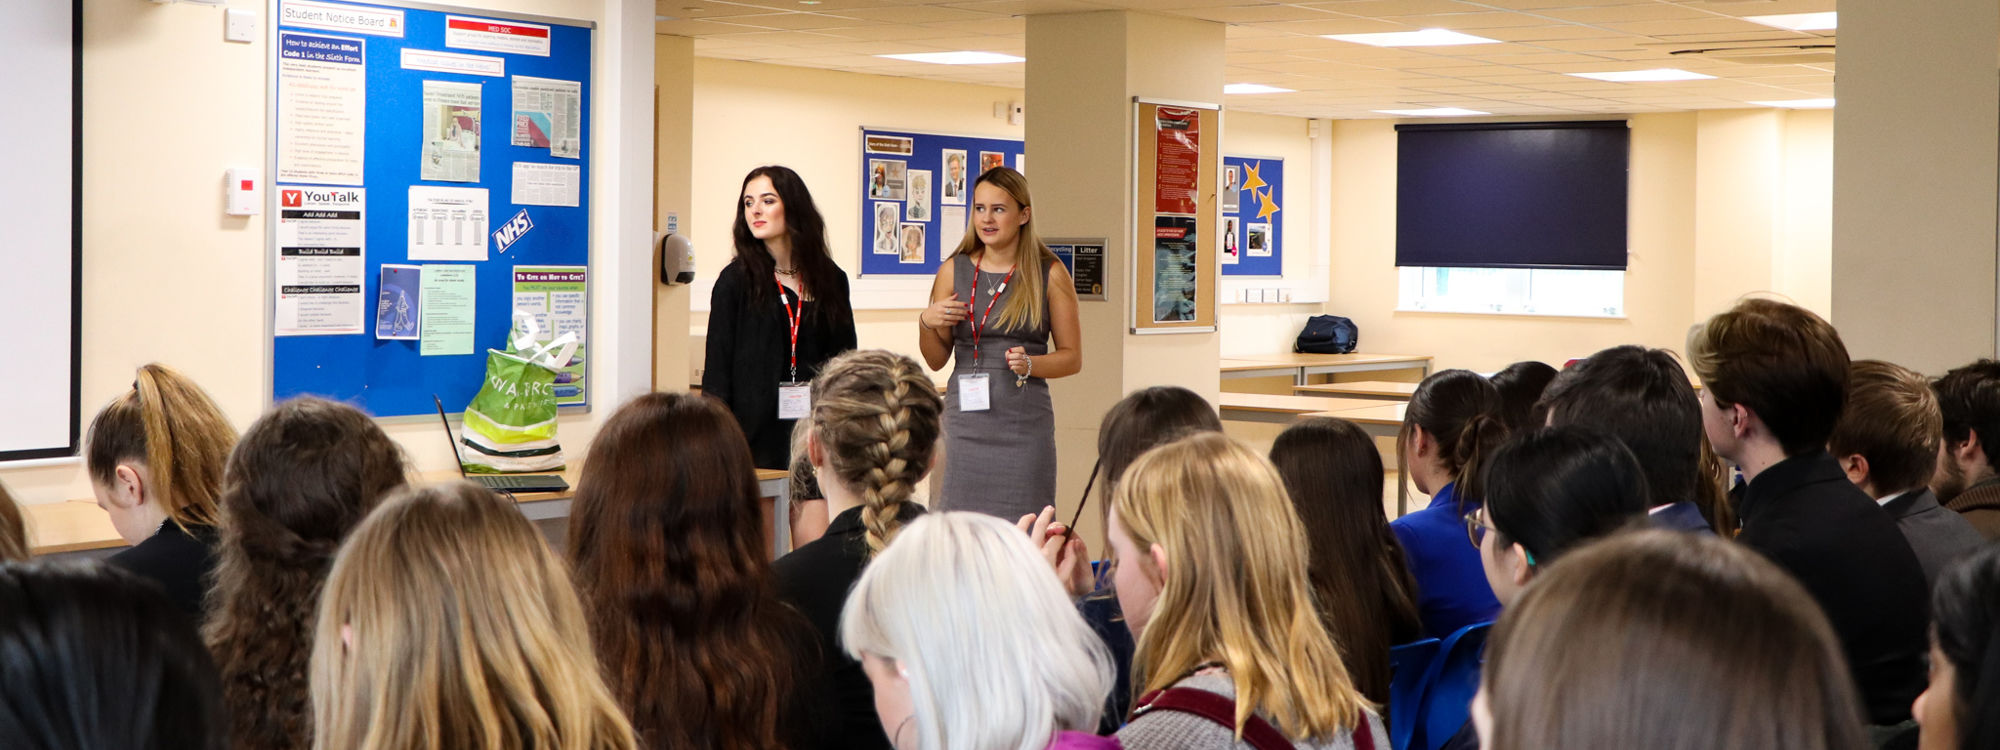 Old Floydians Melissa and Brooke joined us today from@AshurstLLP to give us an insightful explanation of the apprenticeship application process and life as an apprentice